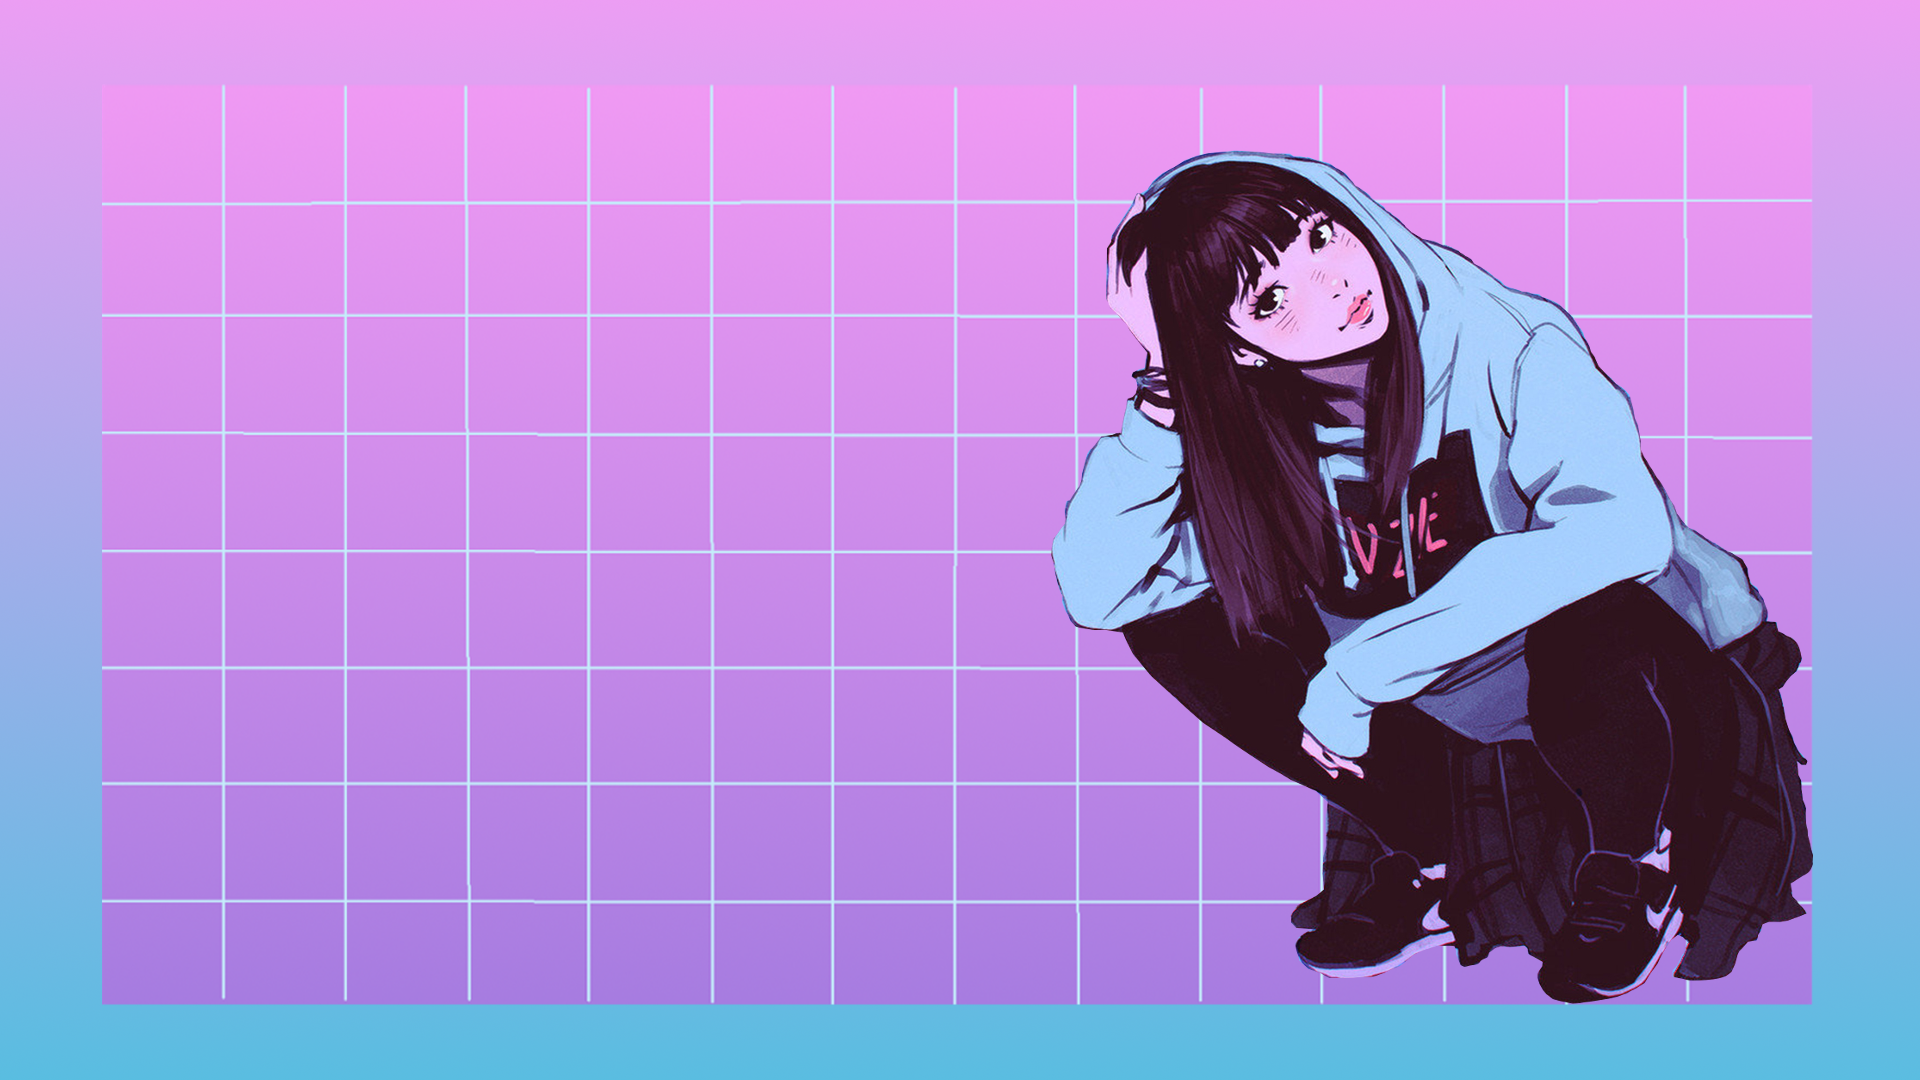 Anime Aesthetic PC Wallpapers